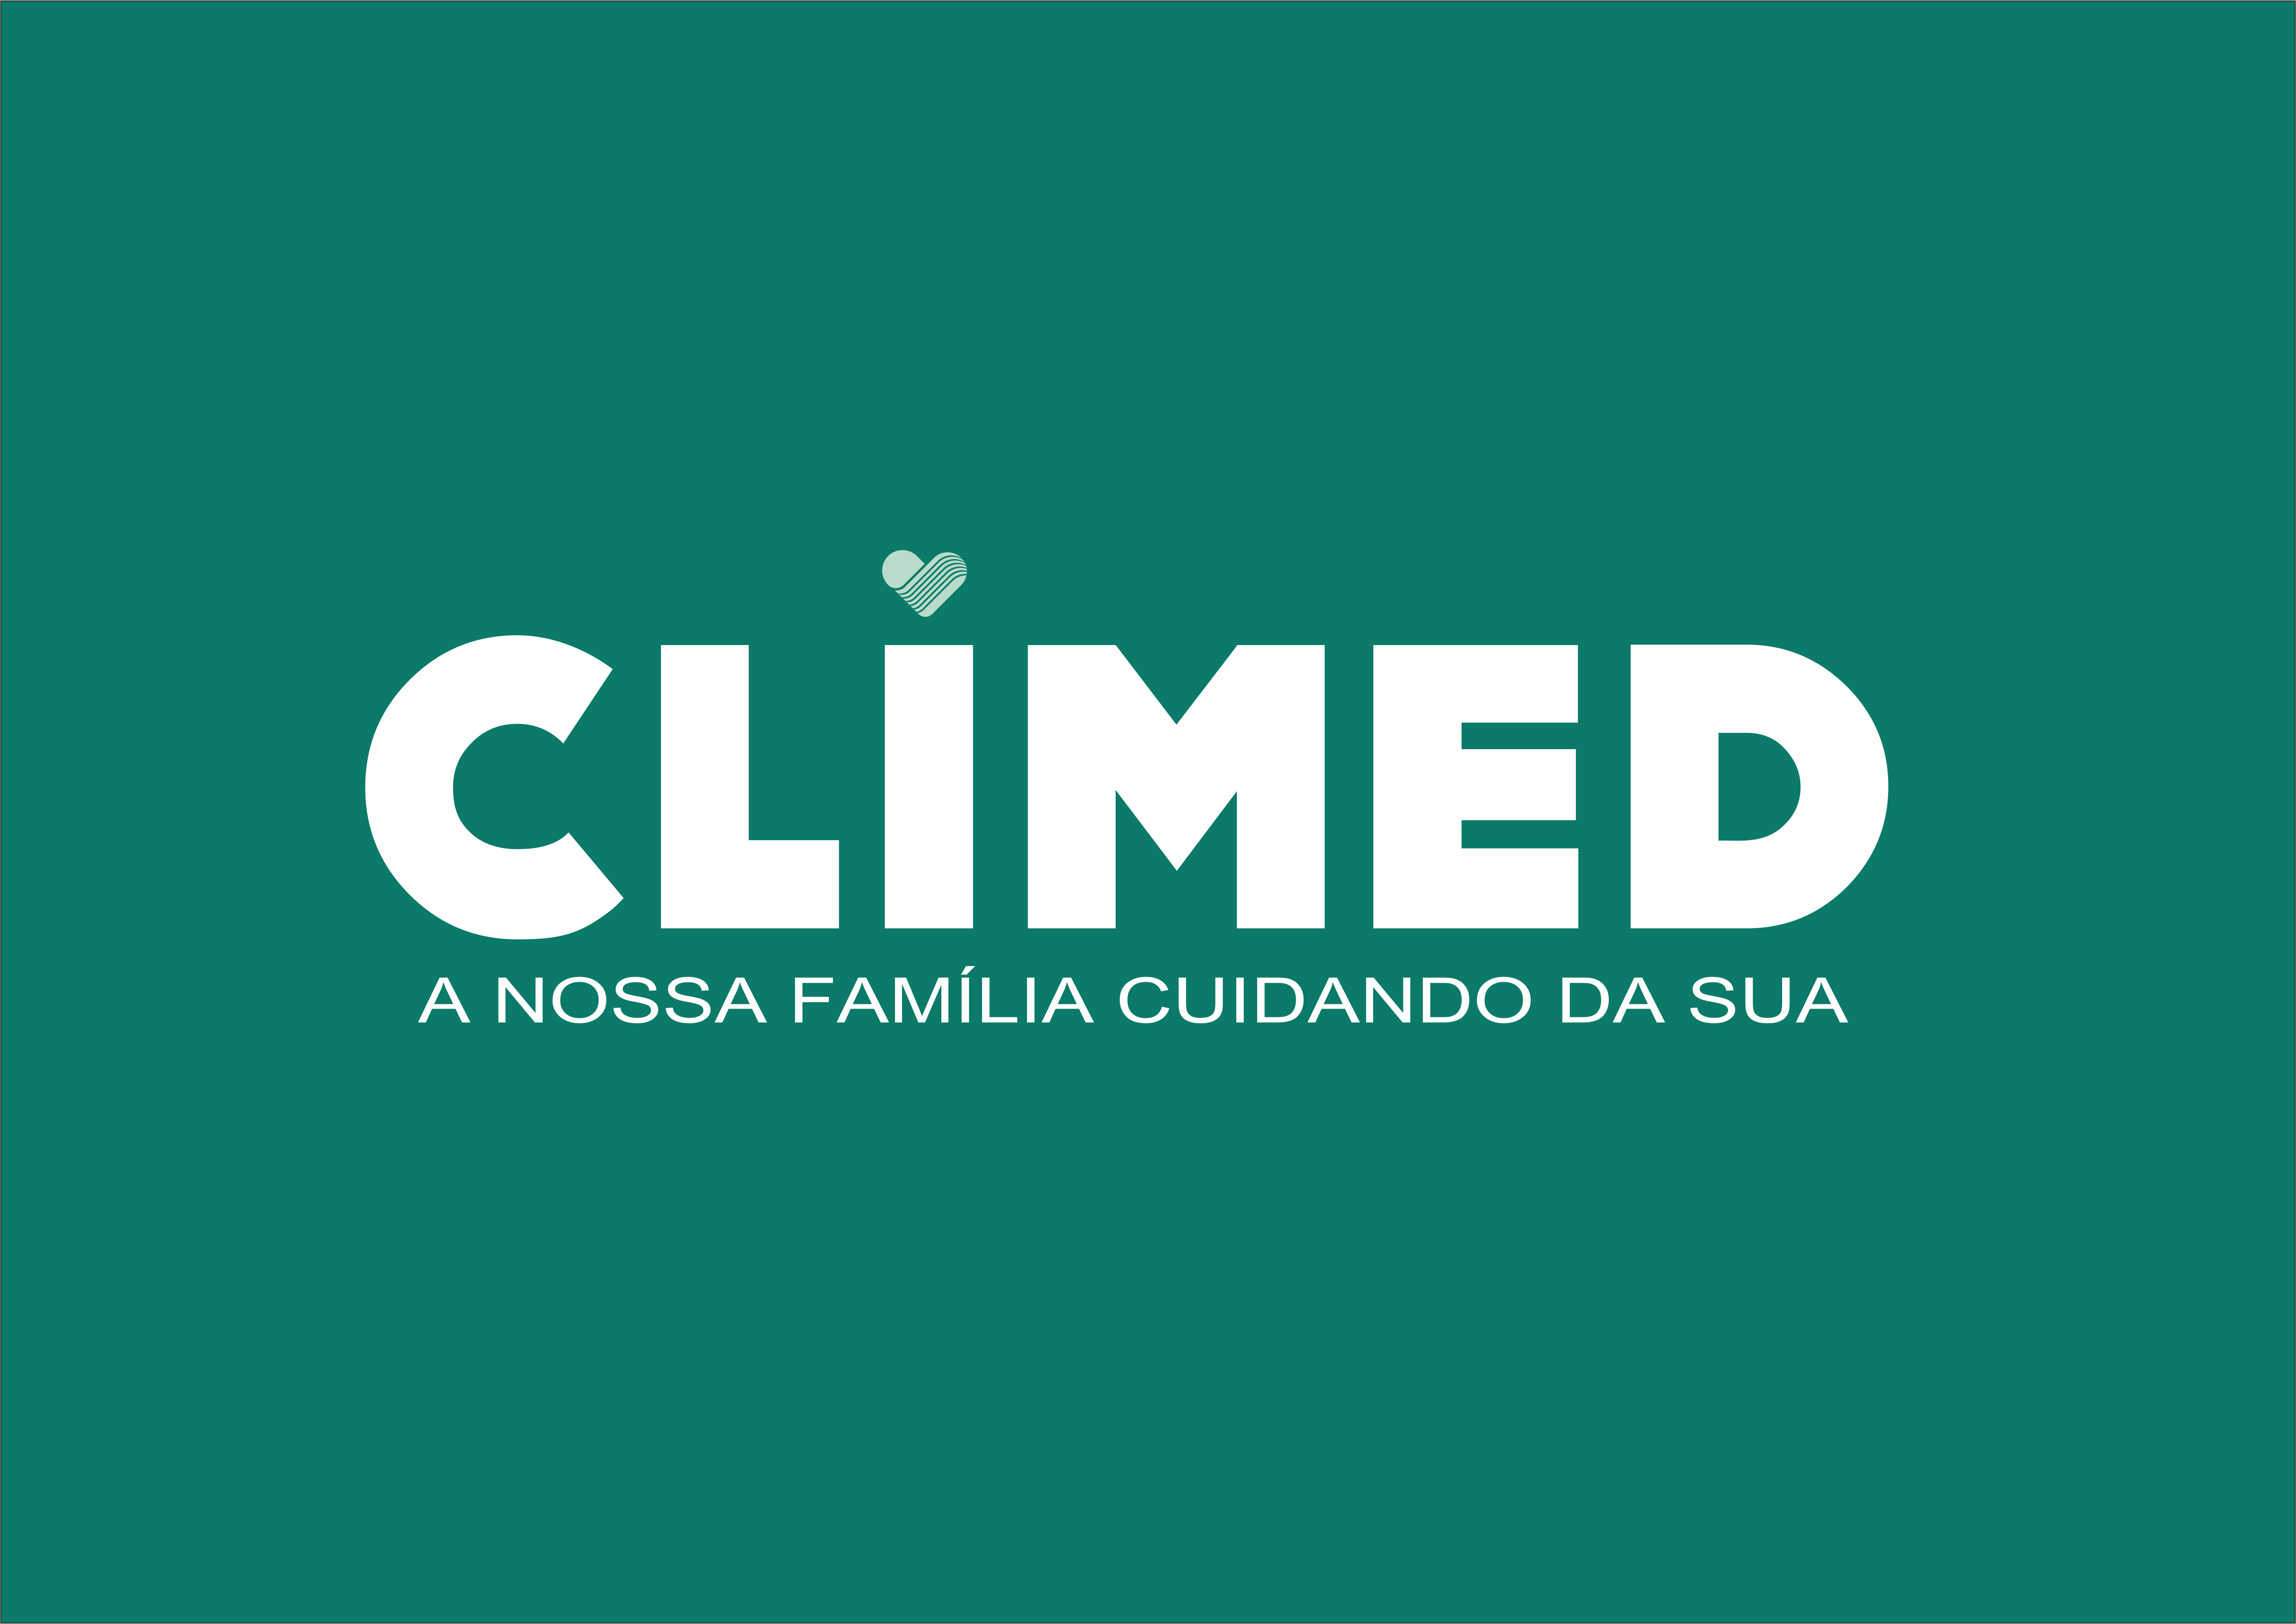 CLIMED